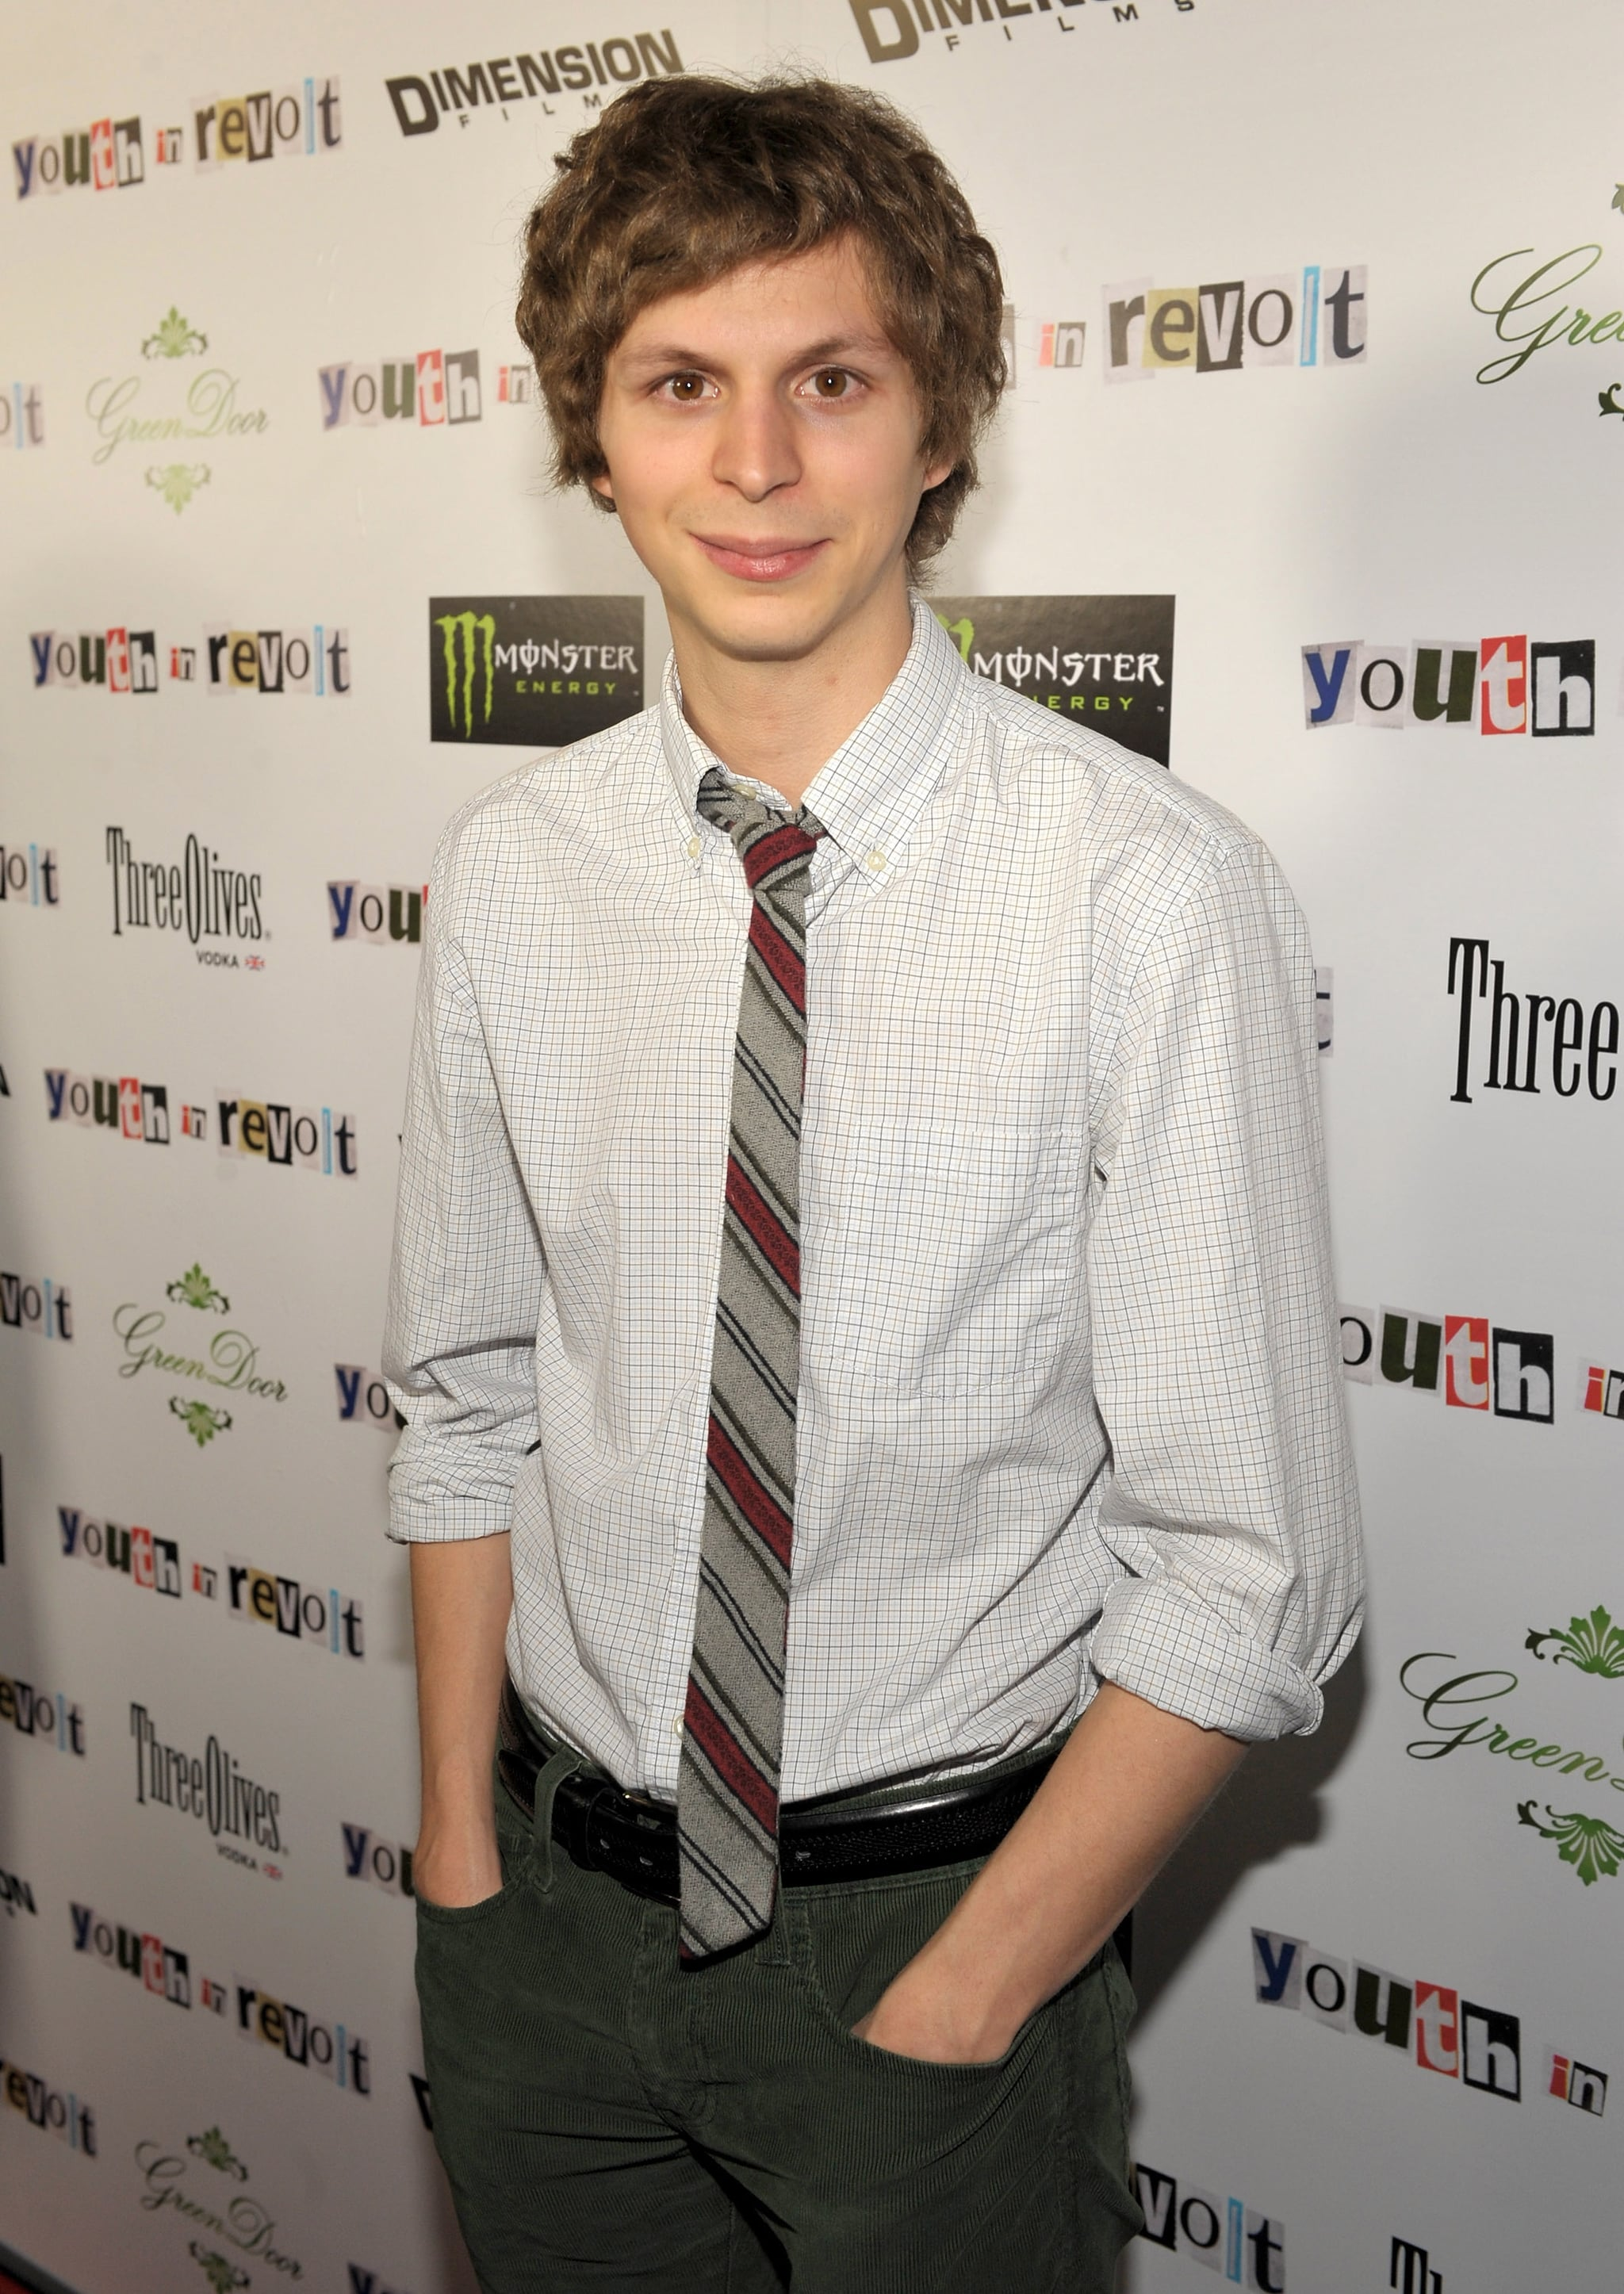 photos of michael cera justin long and drew barrymore